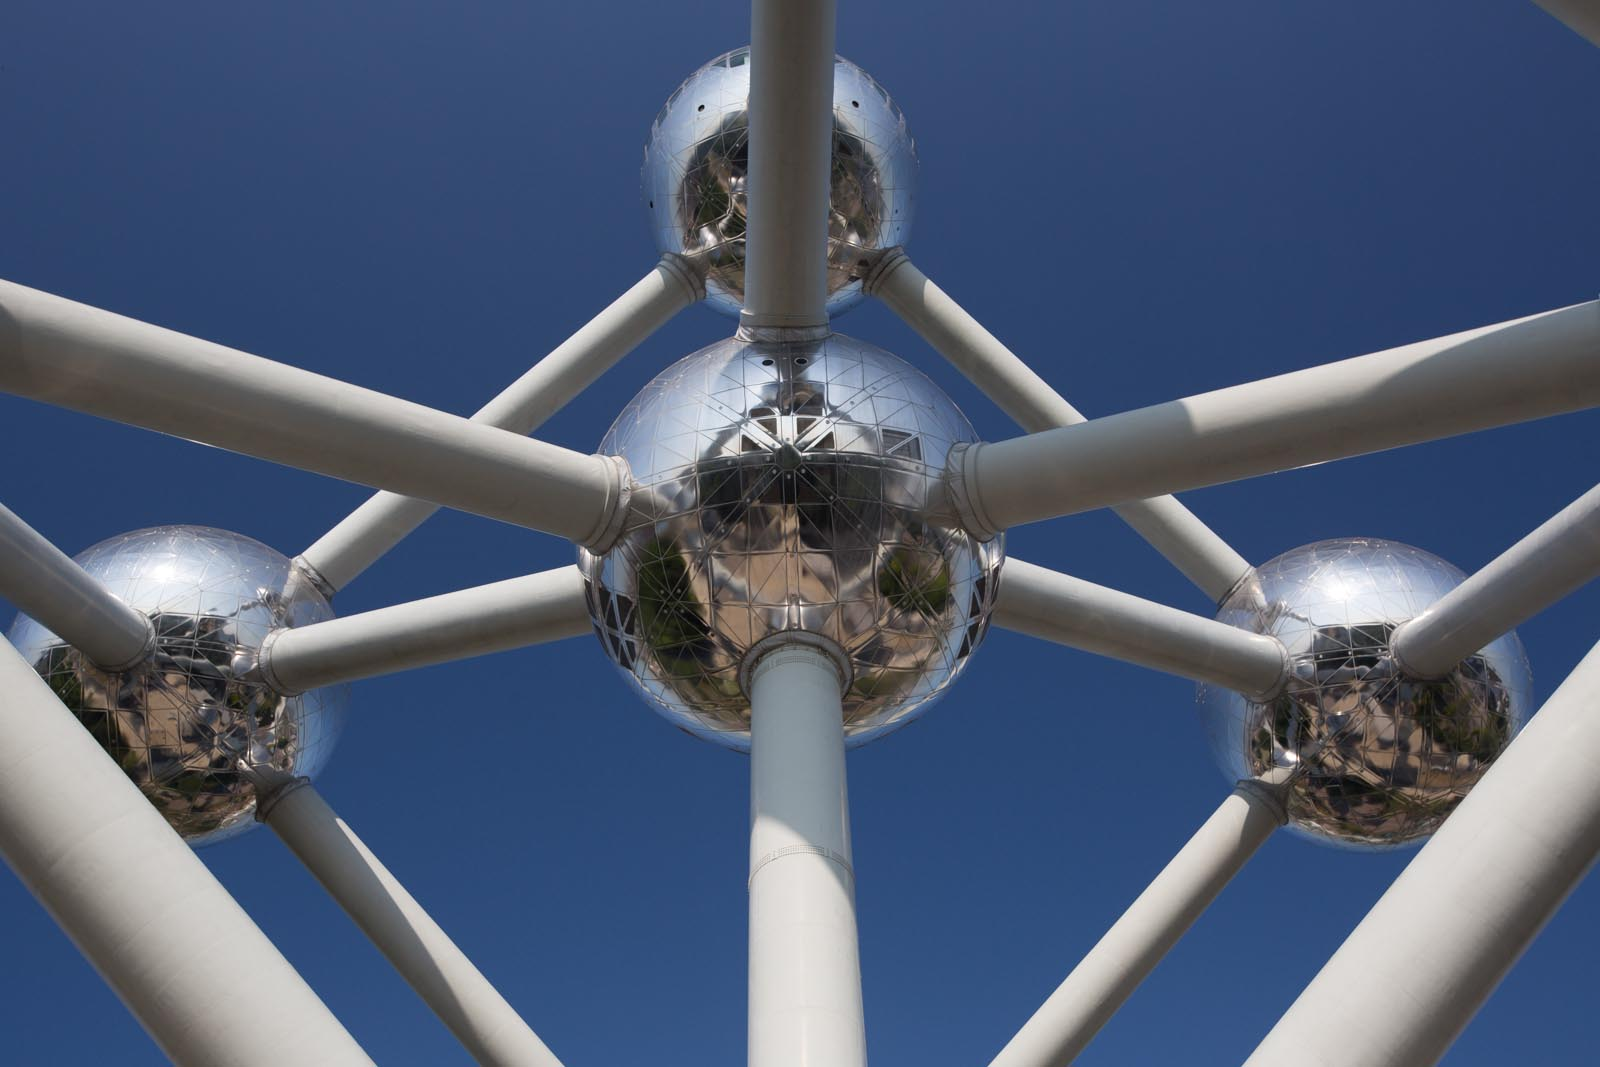 The Atomium, or that thing that people go see outside of Brussels if they're not interested in the small statue of the little boy peeing in town.